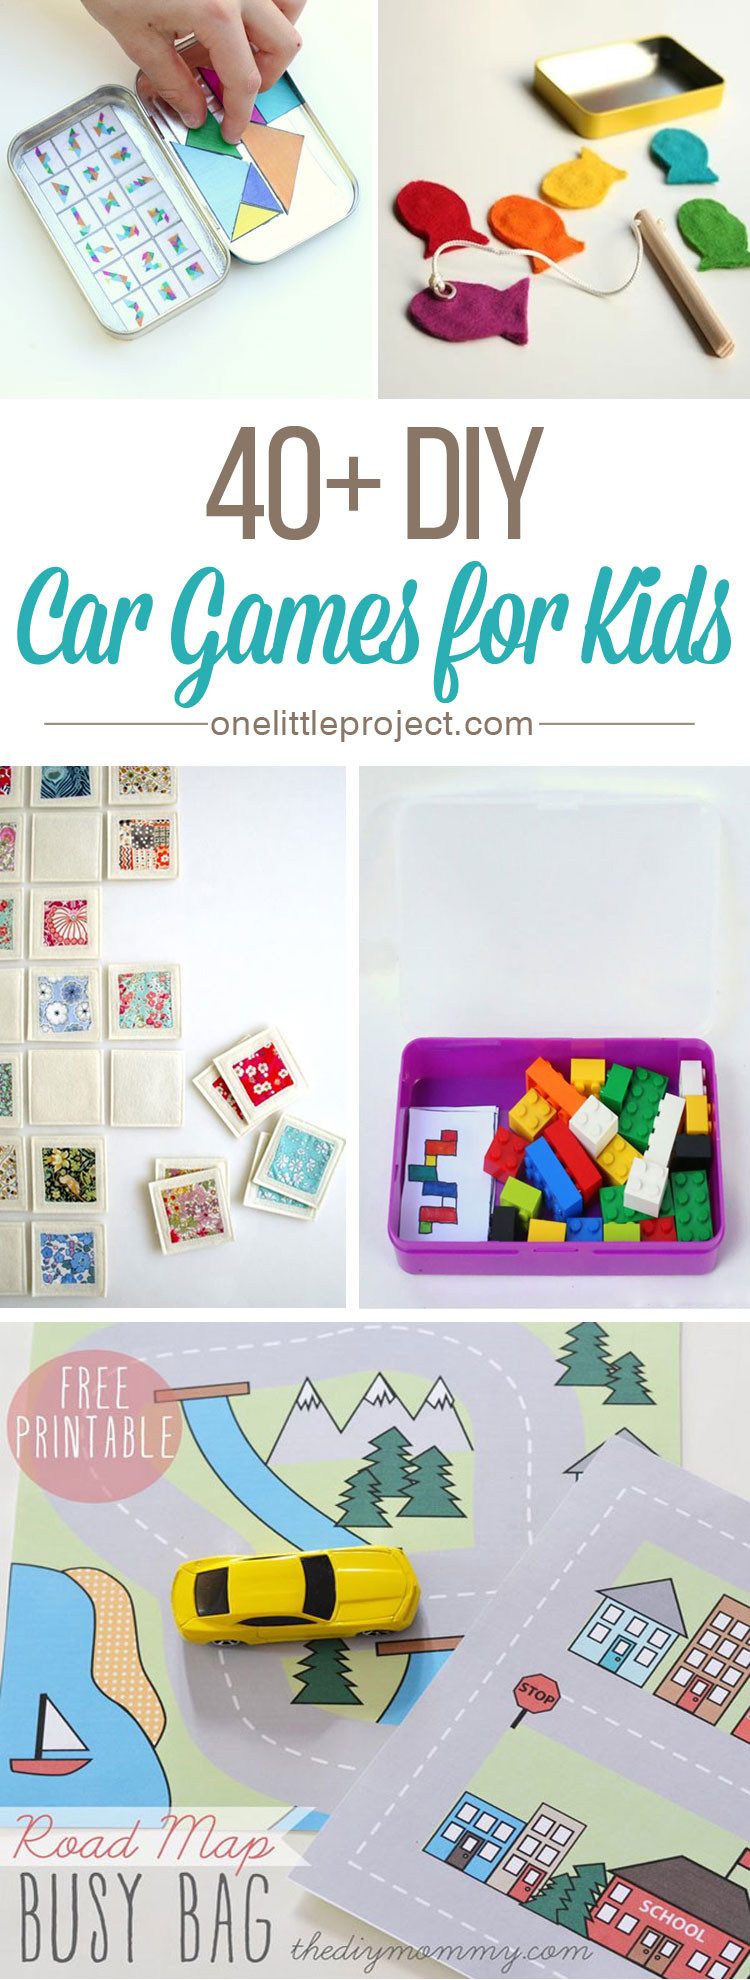 DIY Games For Kids  40 DIY Car Games for Kids